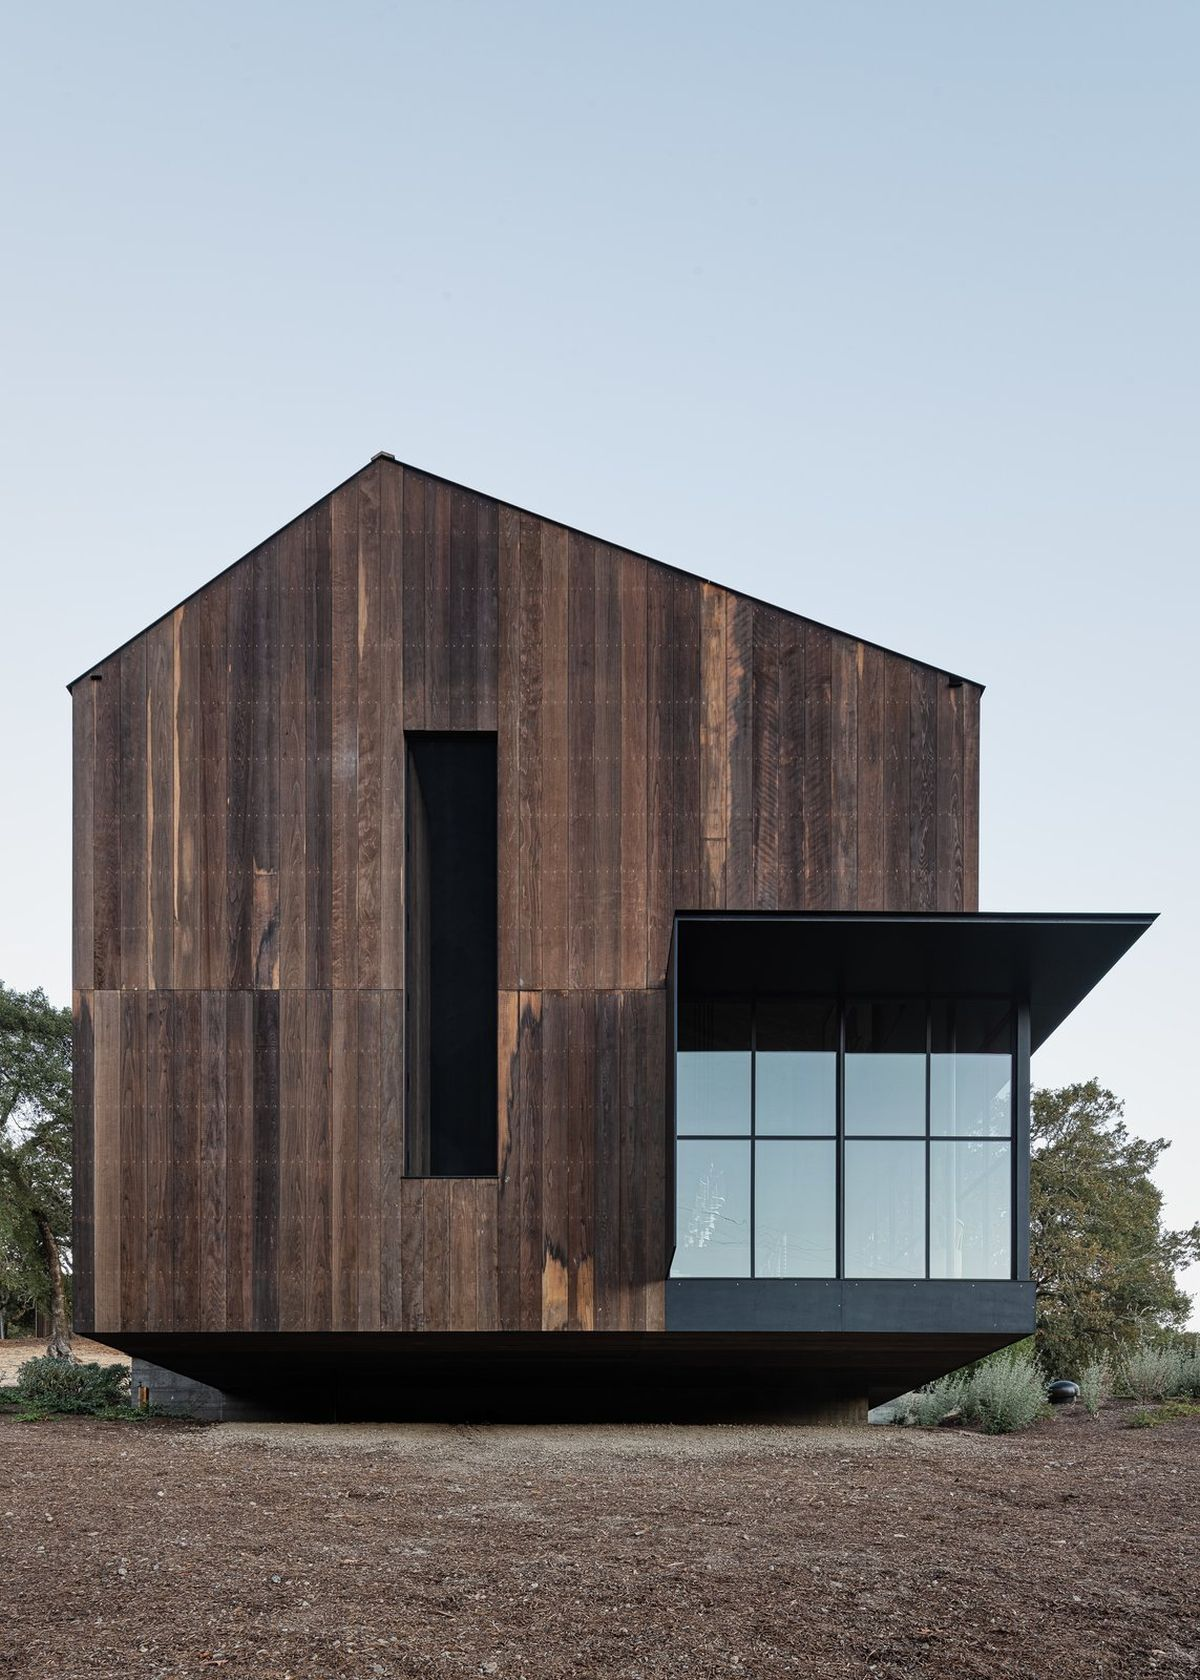 The Big Barn has a clean and simple geometry and is partially clad in reclaimed wood